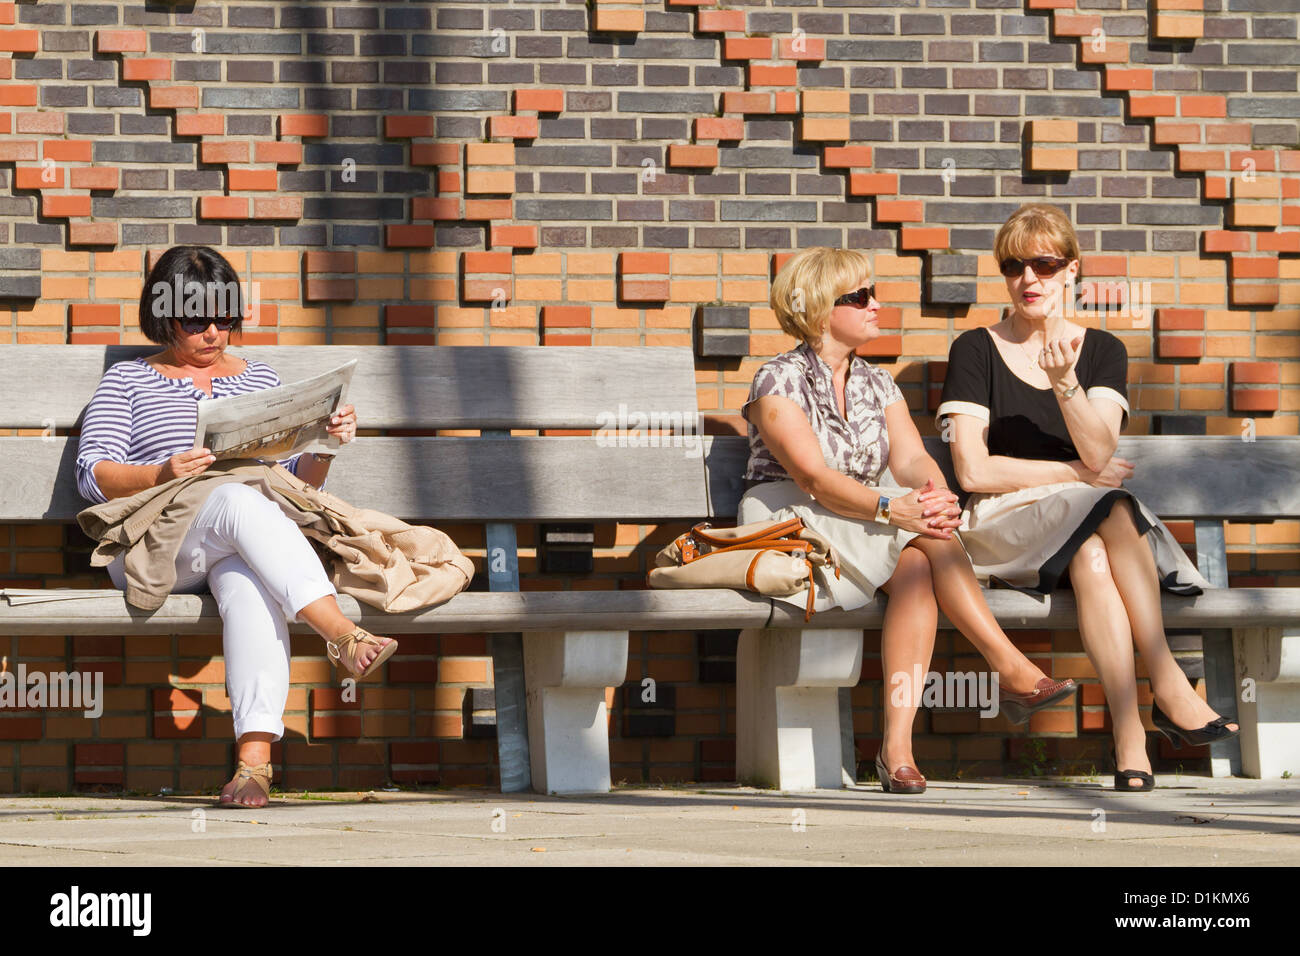 People having a Break in the Sunshine in Hamburg, Germany - Stock Image